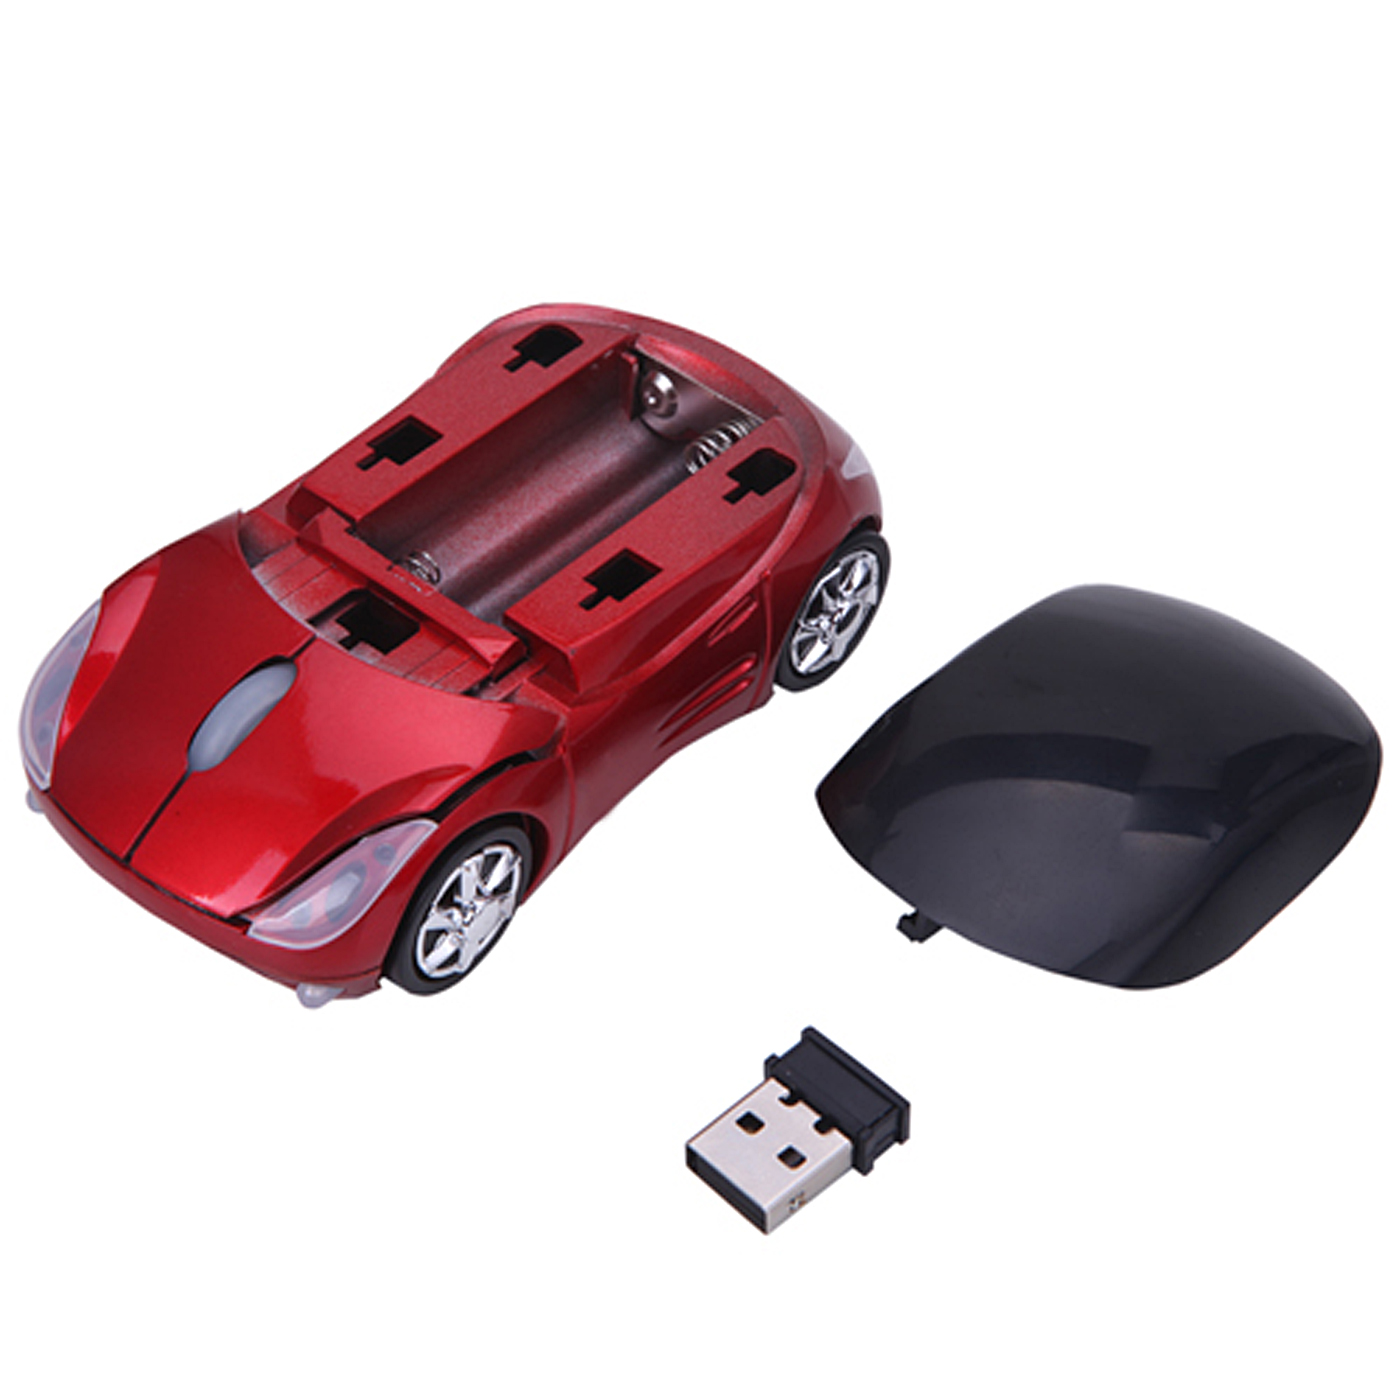 HDE 2.4GHz Sports Car Shape Wireless Ergonomic Optical Mouse with Adjustable DPI (California Silver)